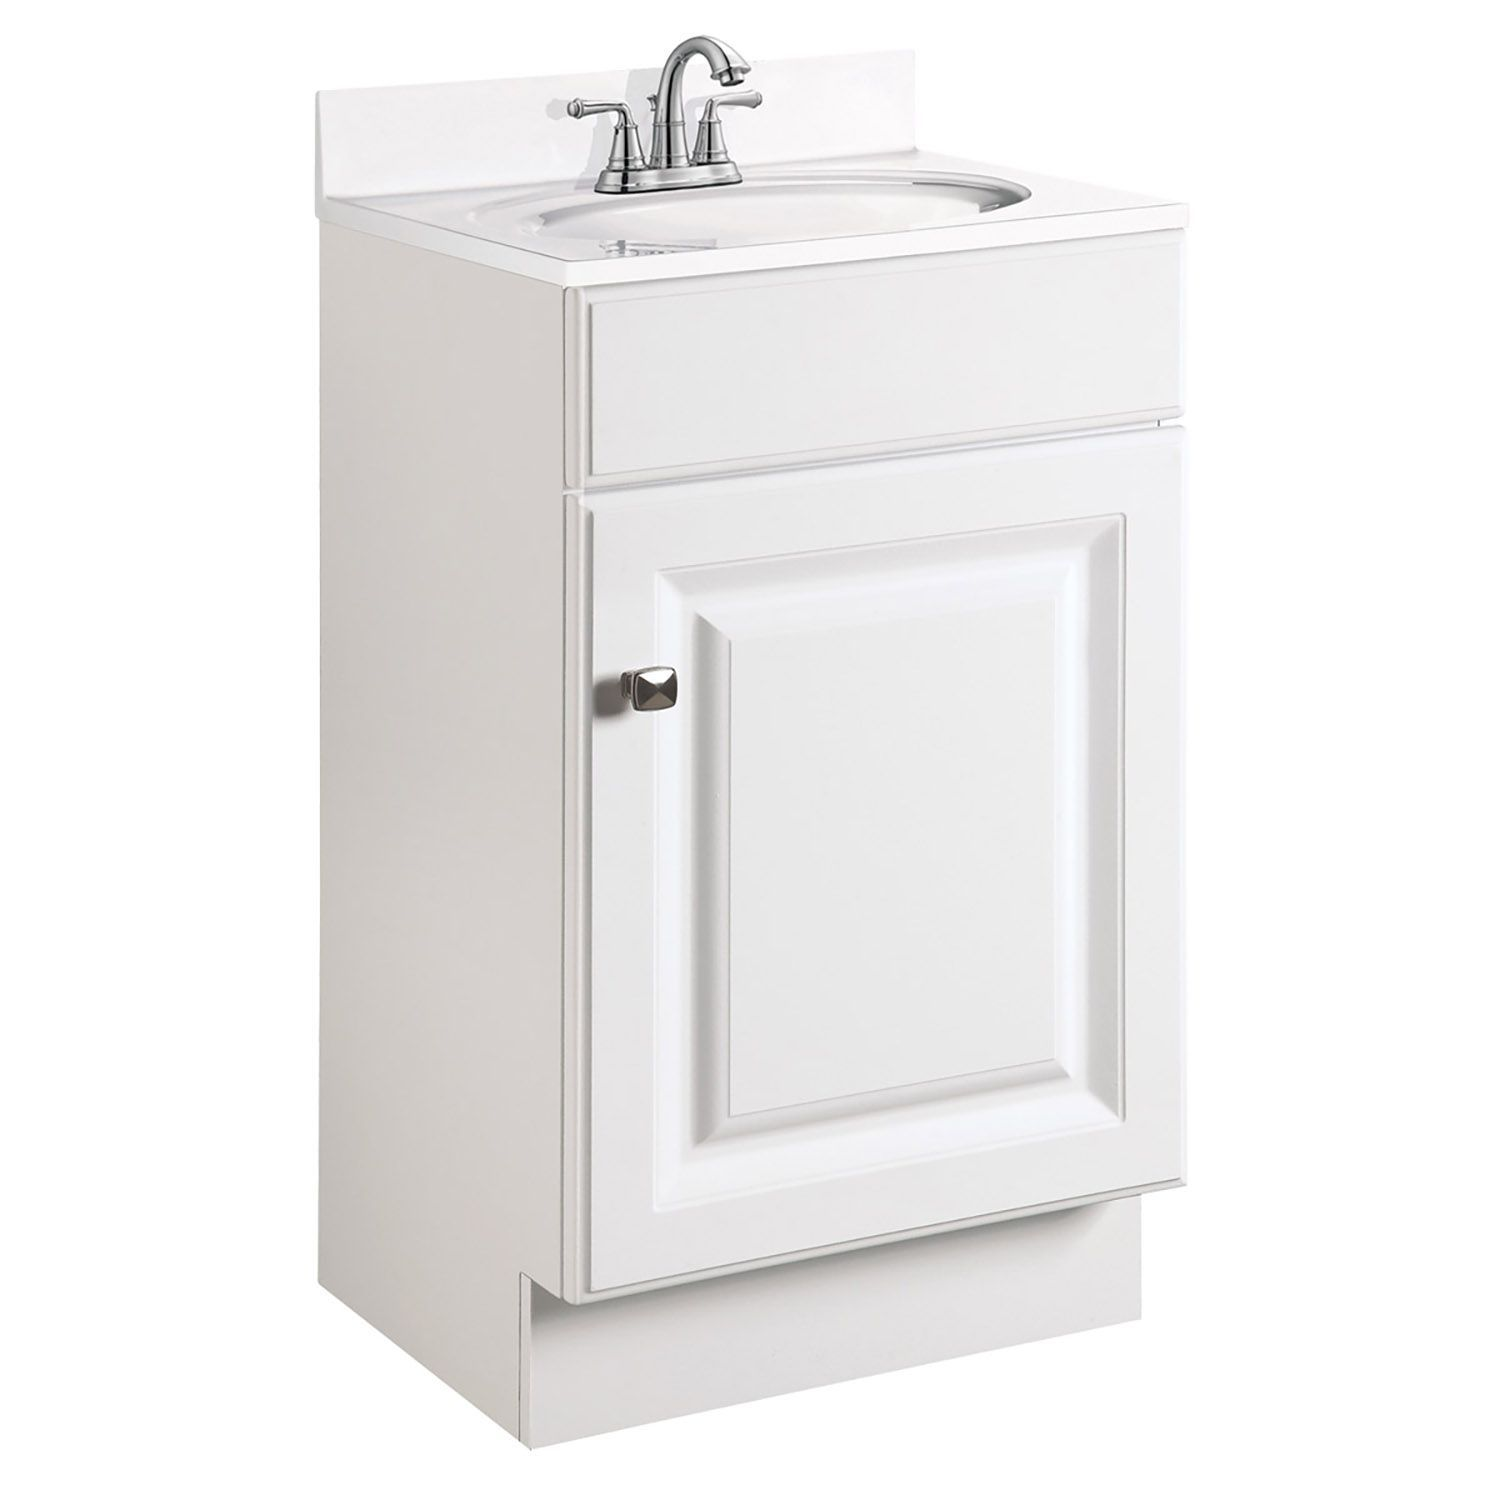 18 Inch Deep Bathroom Vanity - Bathroom Decor